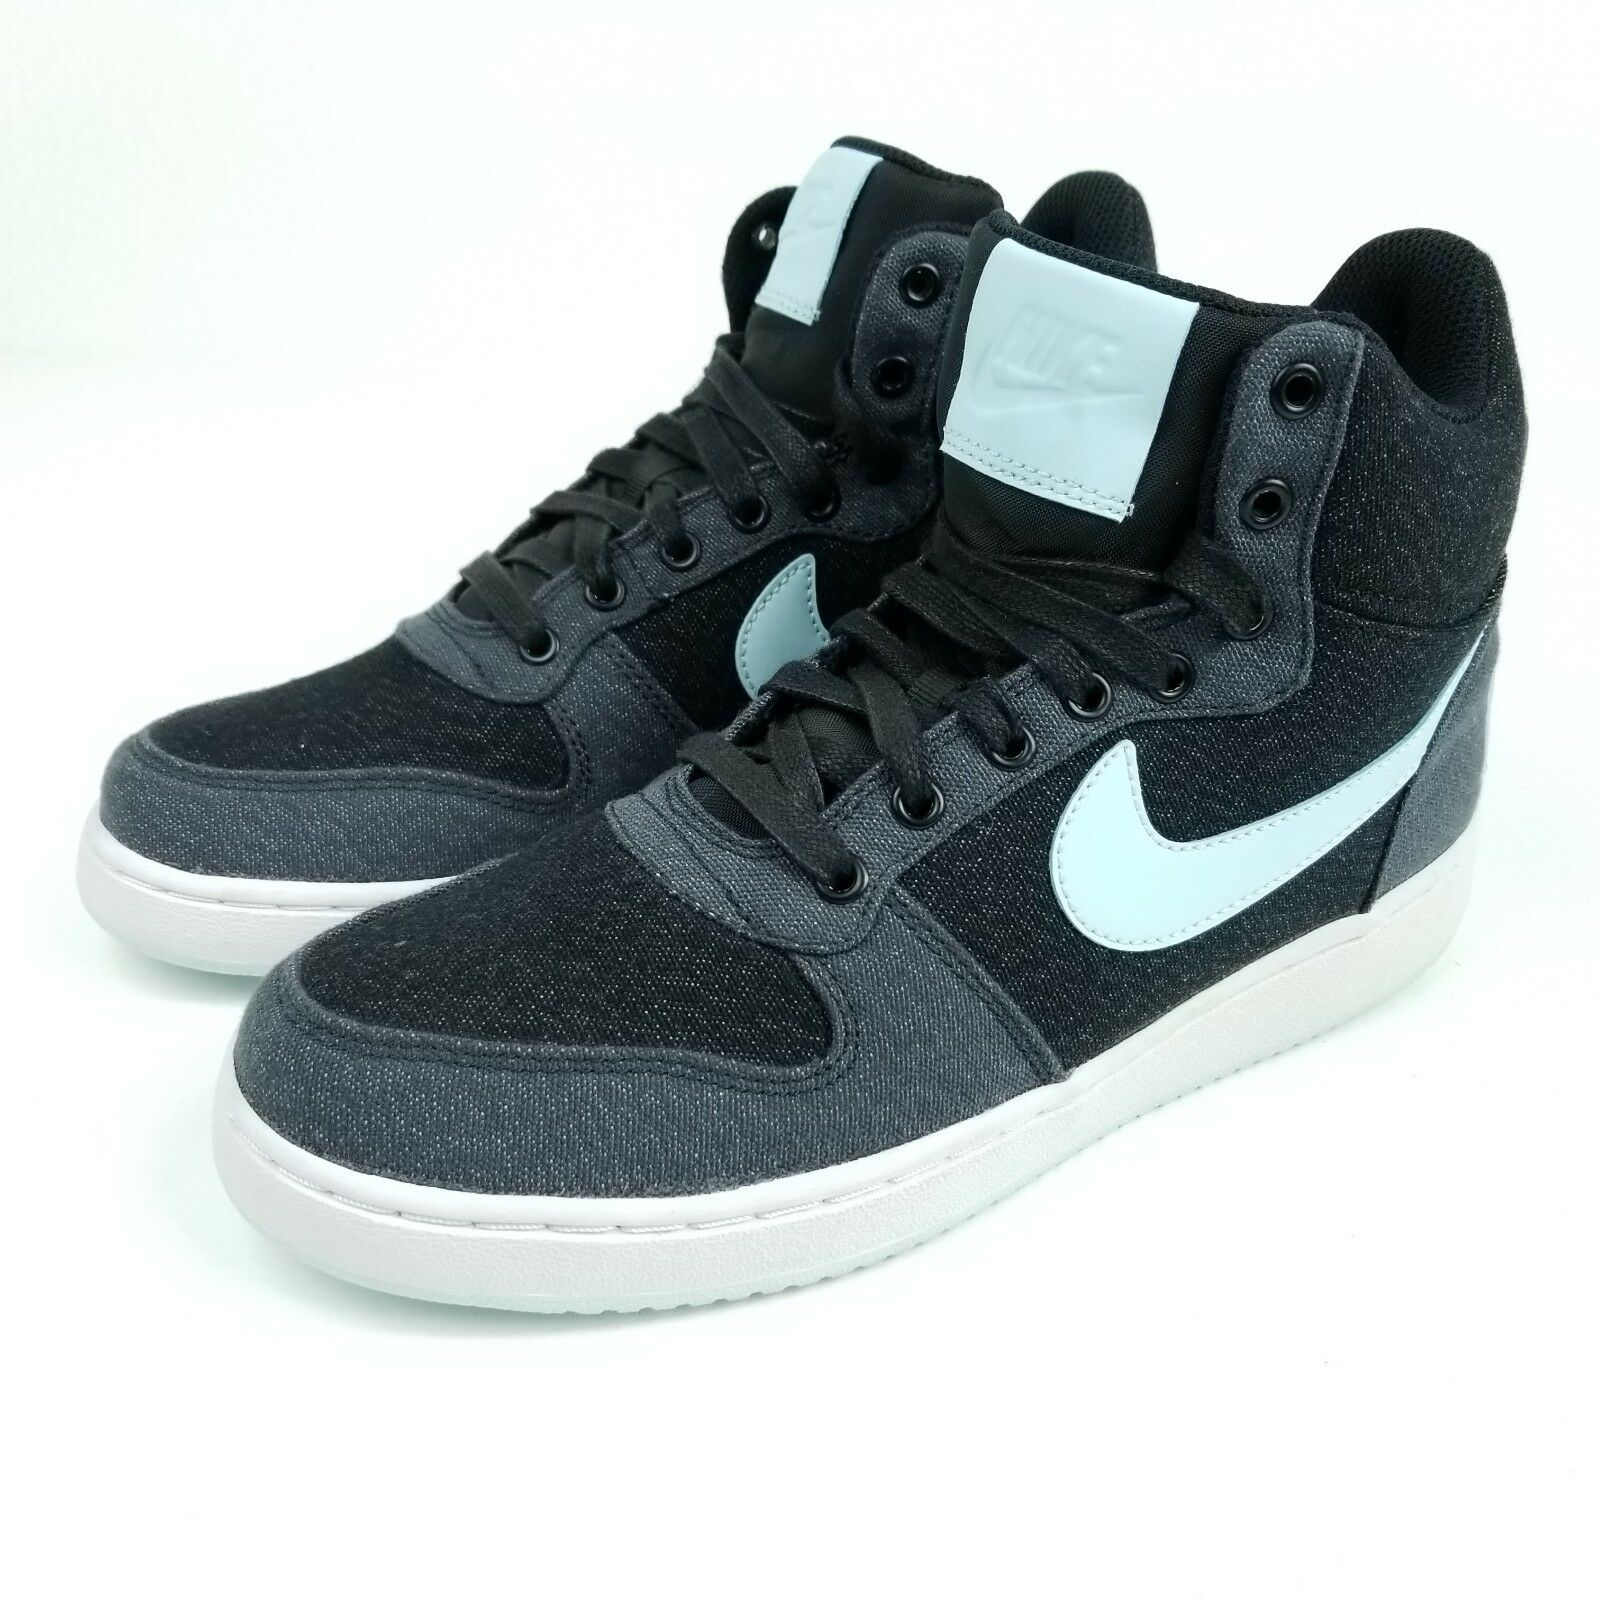 NIKE Court Borough Mid Premium Womens Sz 9 Shoes Black Gray 844907 004 The most popular shoes for men and women